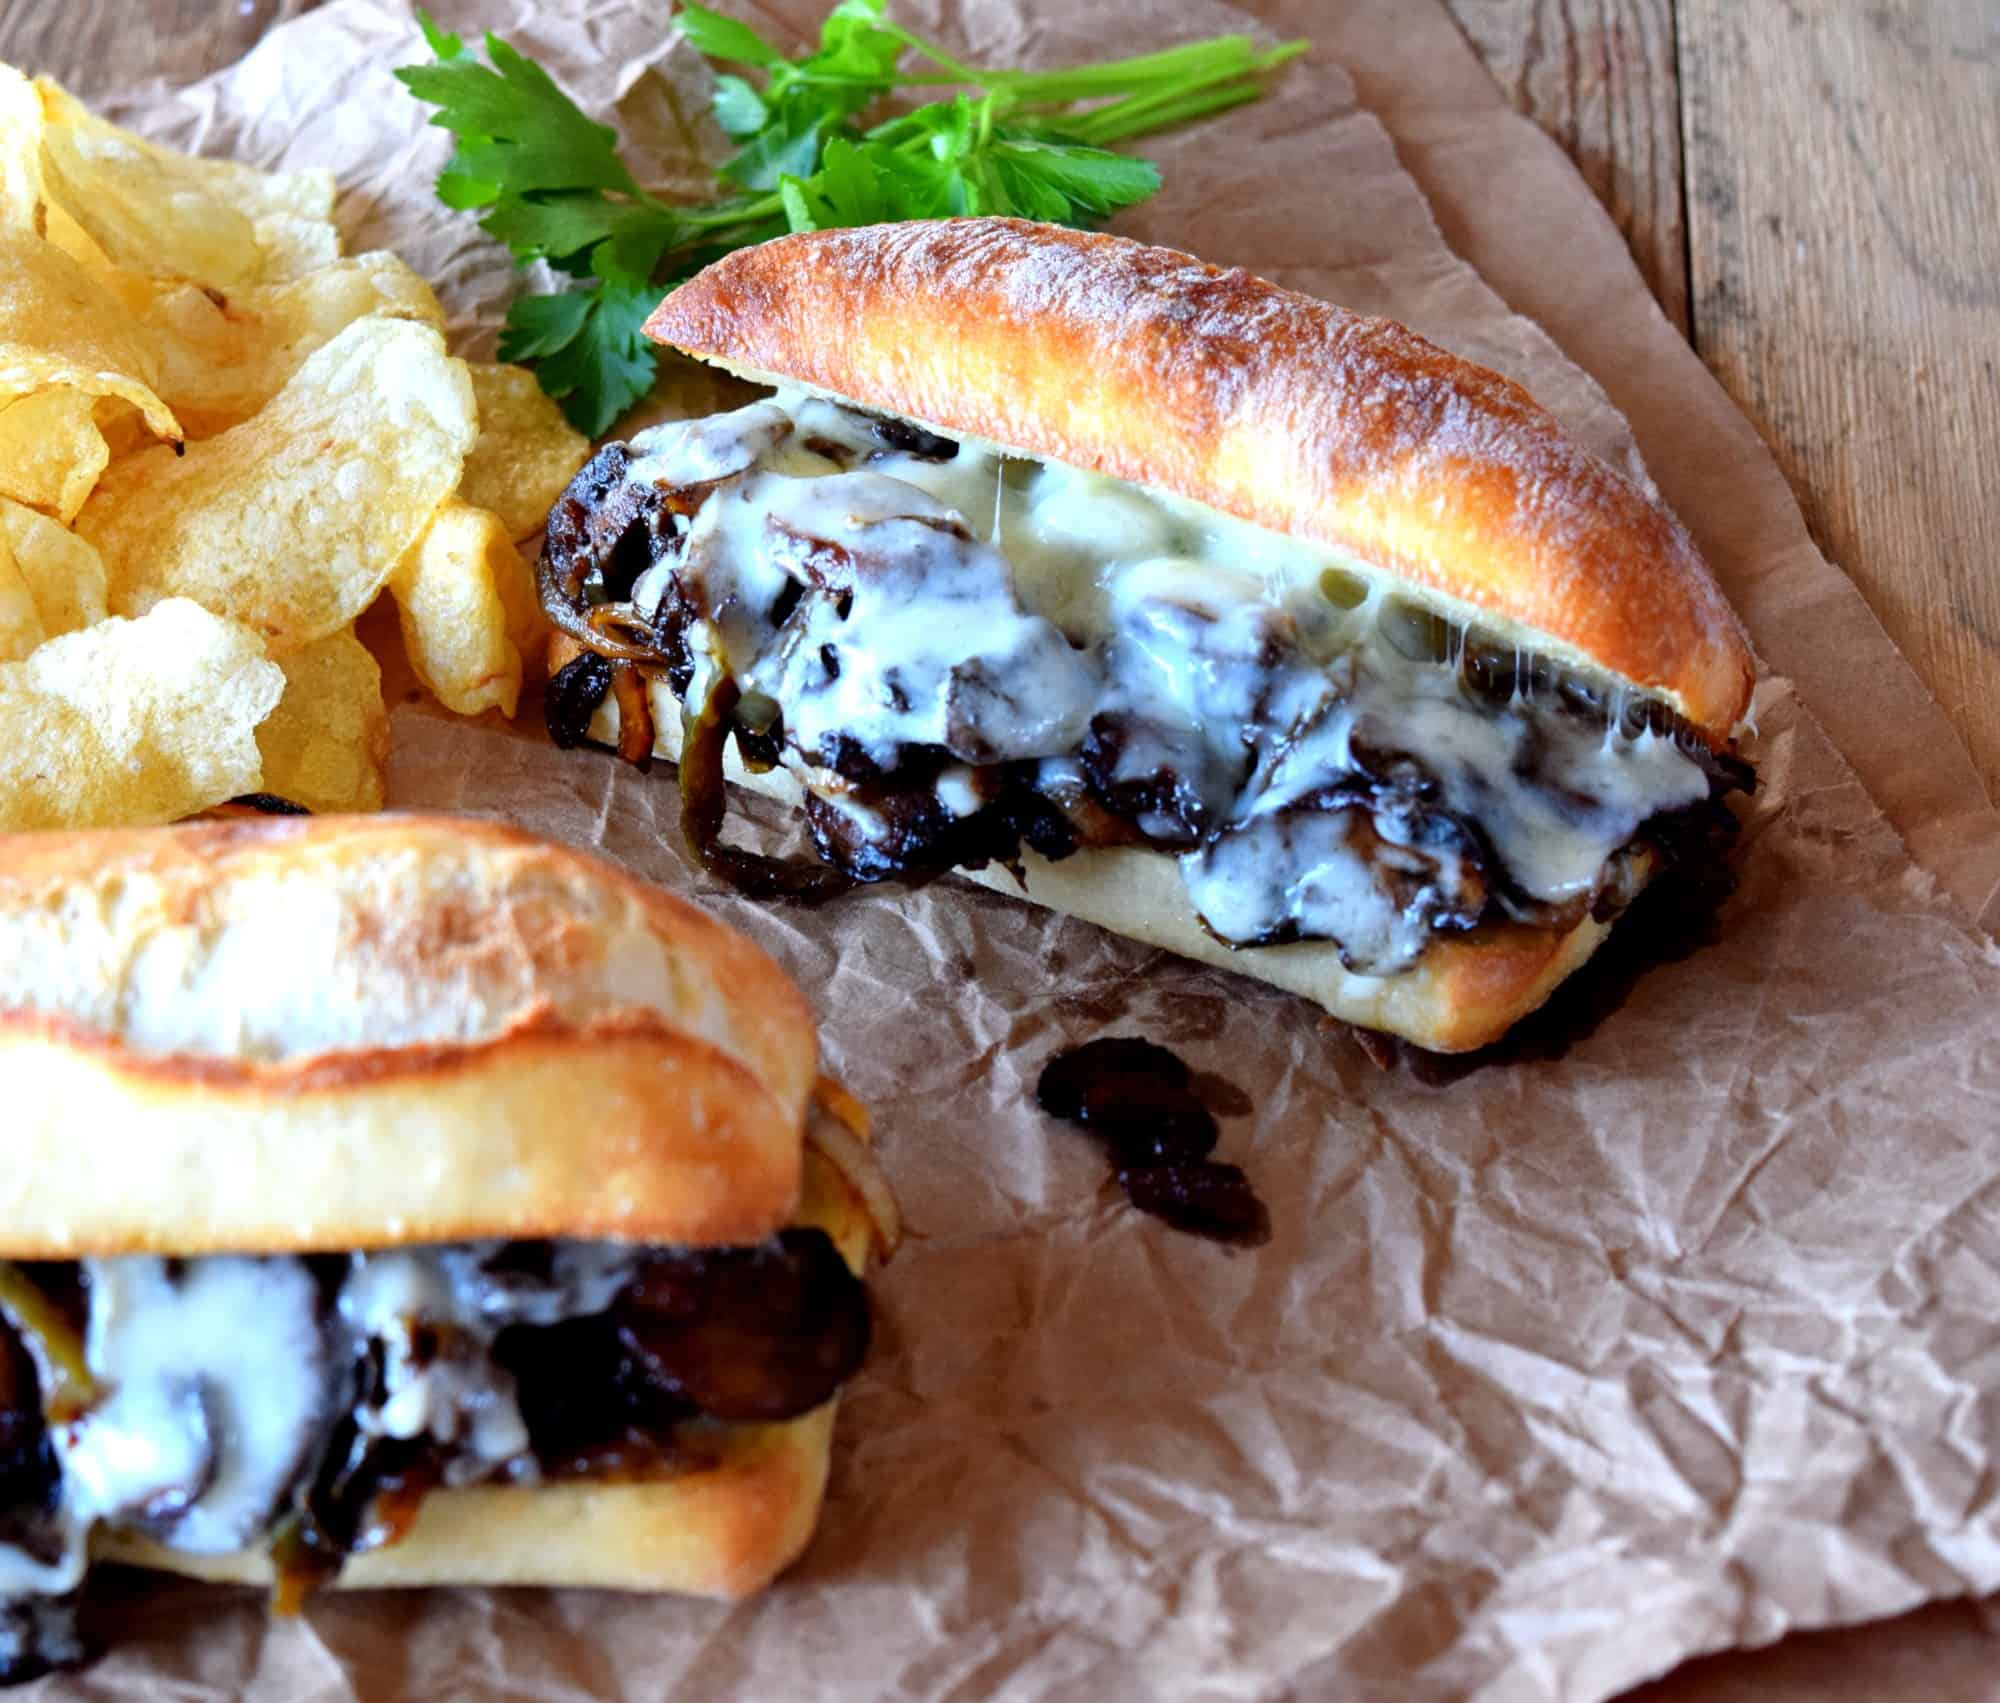 Philly Sautéed Mushroom Cheesesteak Sandwich